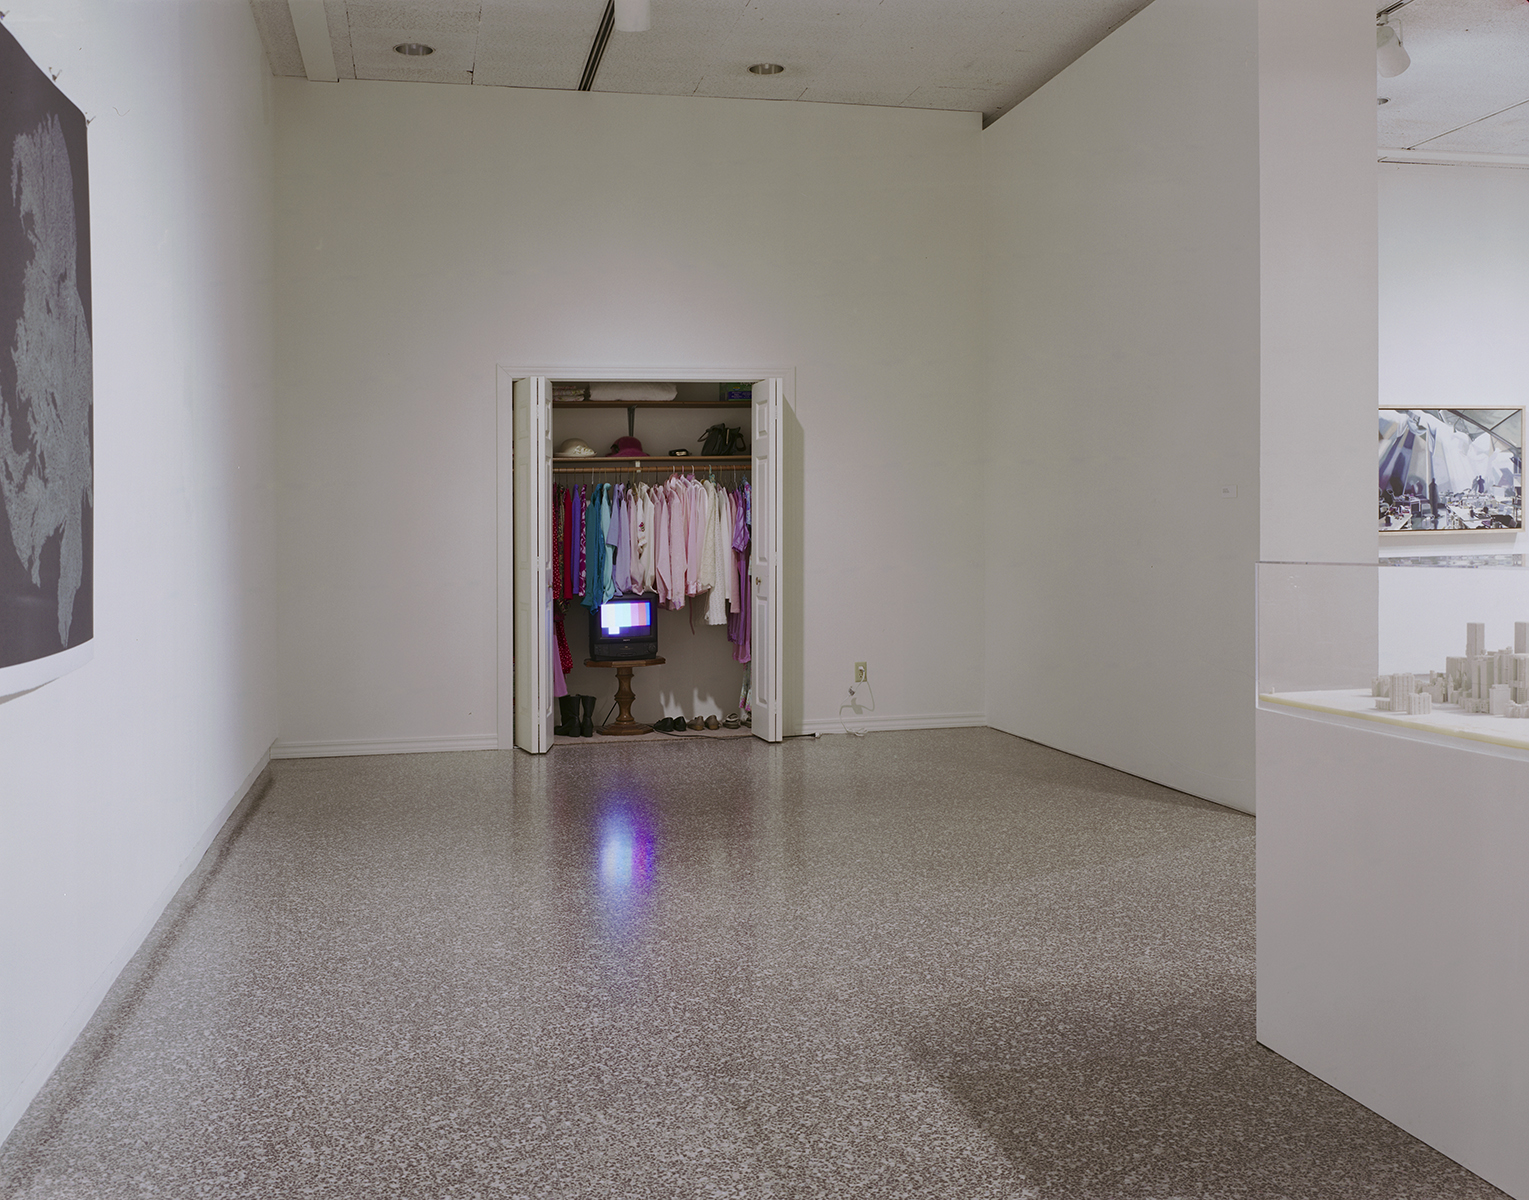 Grandmother's Closet Installation (with sound and scent), McKnight Exhibition, Minneapolis College of Art & Design, 2006